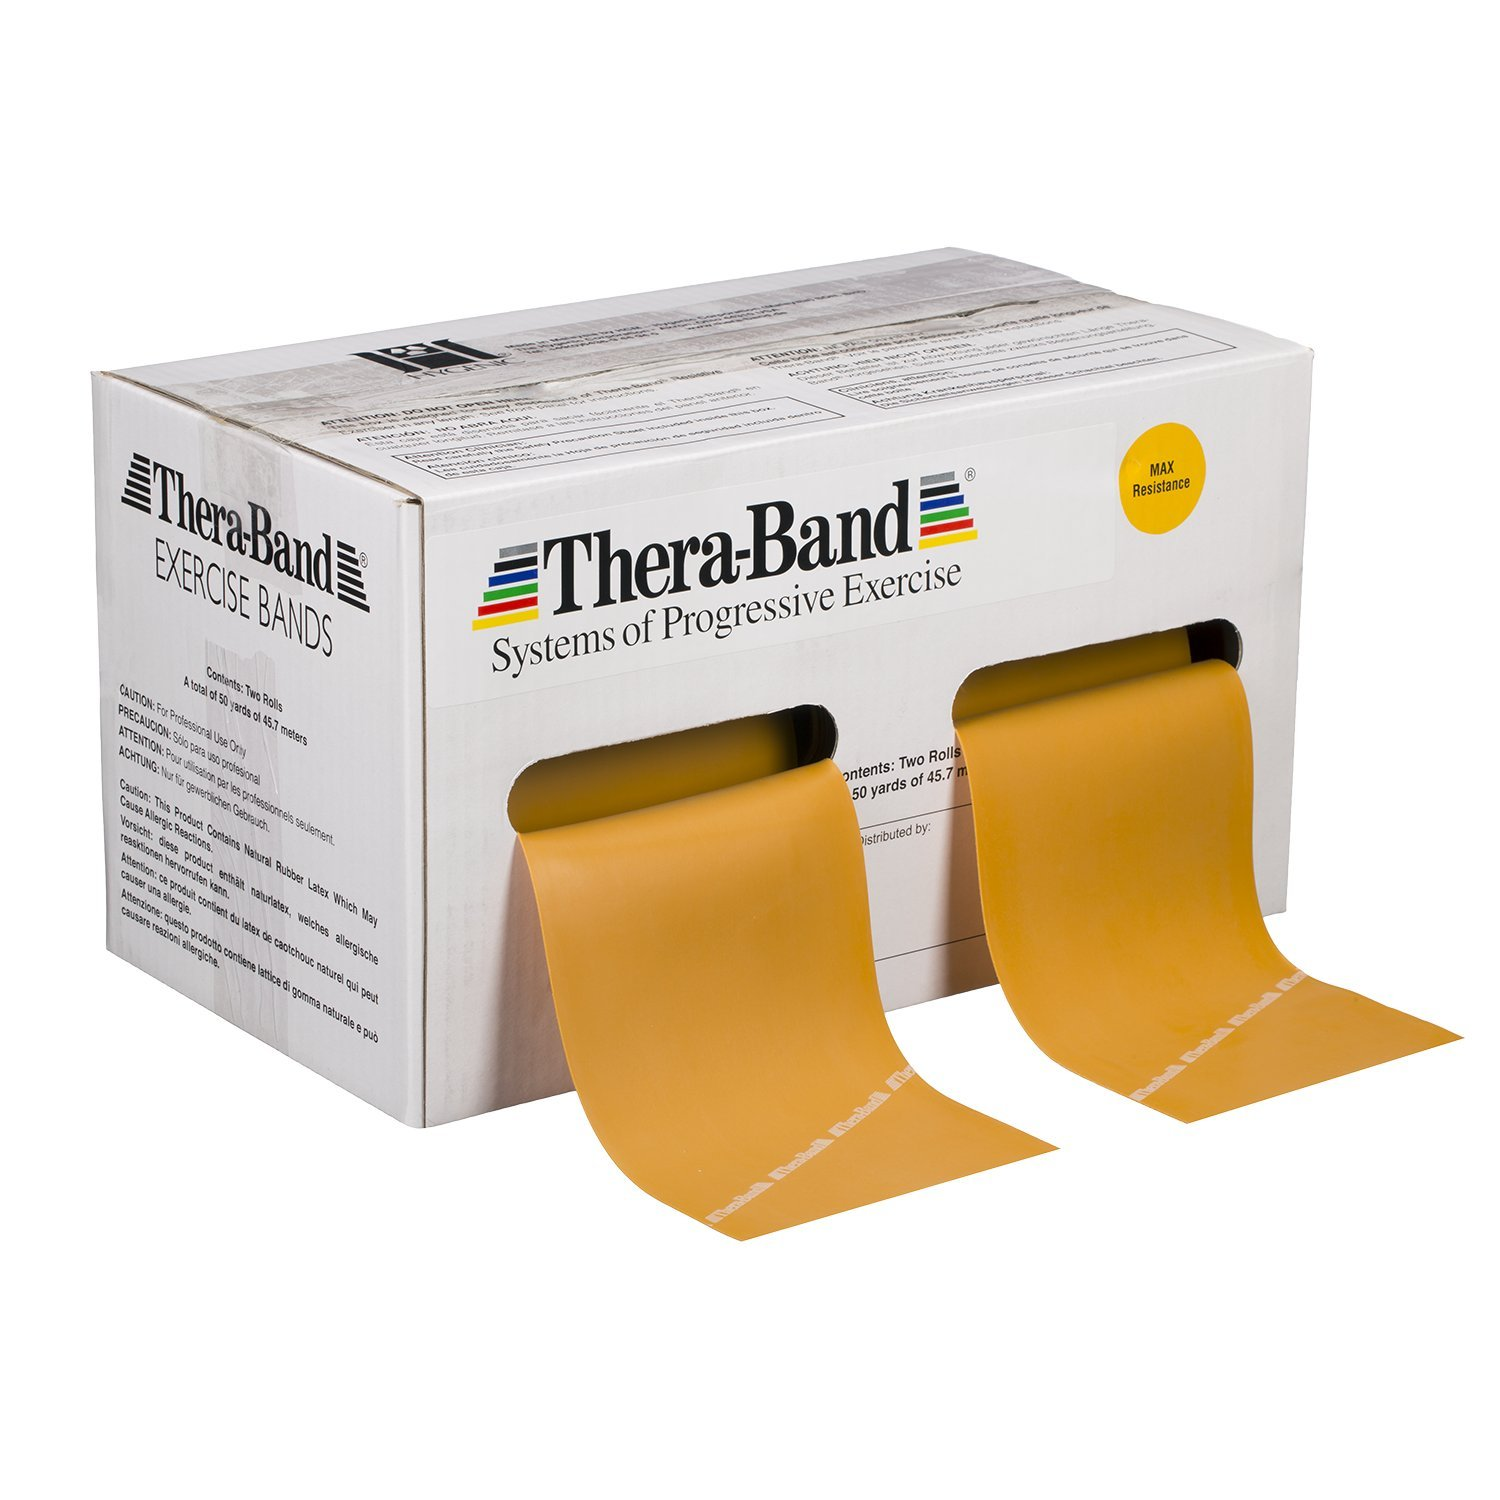 TheraBand Professional Latex Resistance Bands For Upper Body, Lower Body, and Core Exercise, Physical Therapy, Lower Pilates, At-Home Workouts without Weights, and Rehab, 50 Yard Roll, Gold, Max, Elite